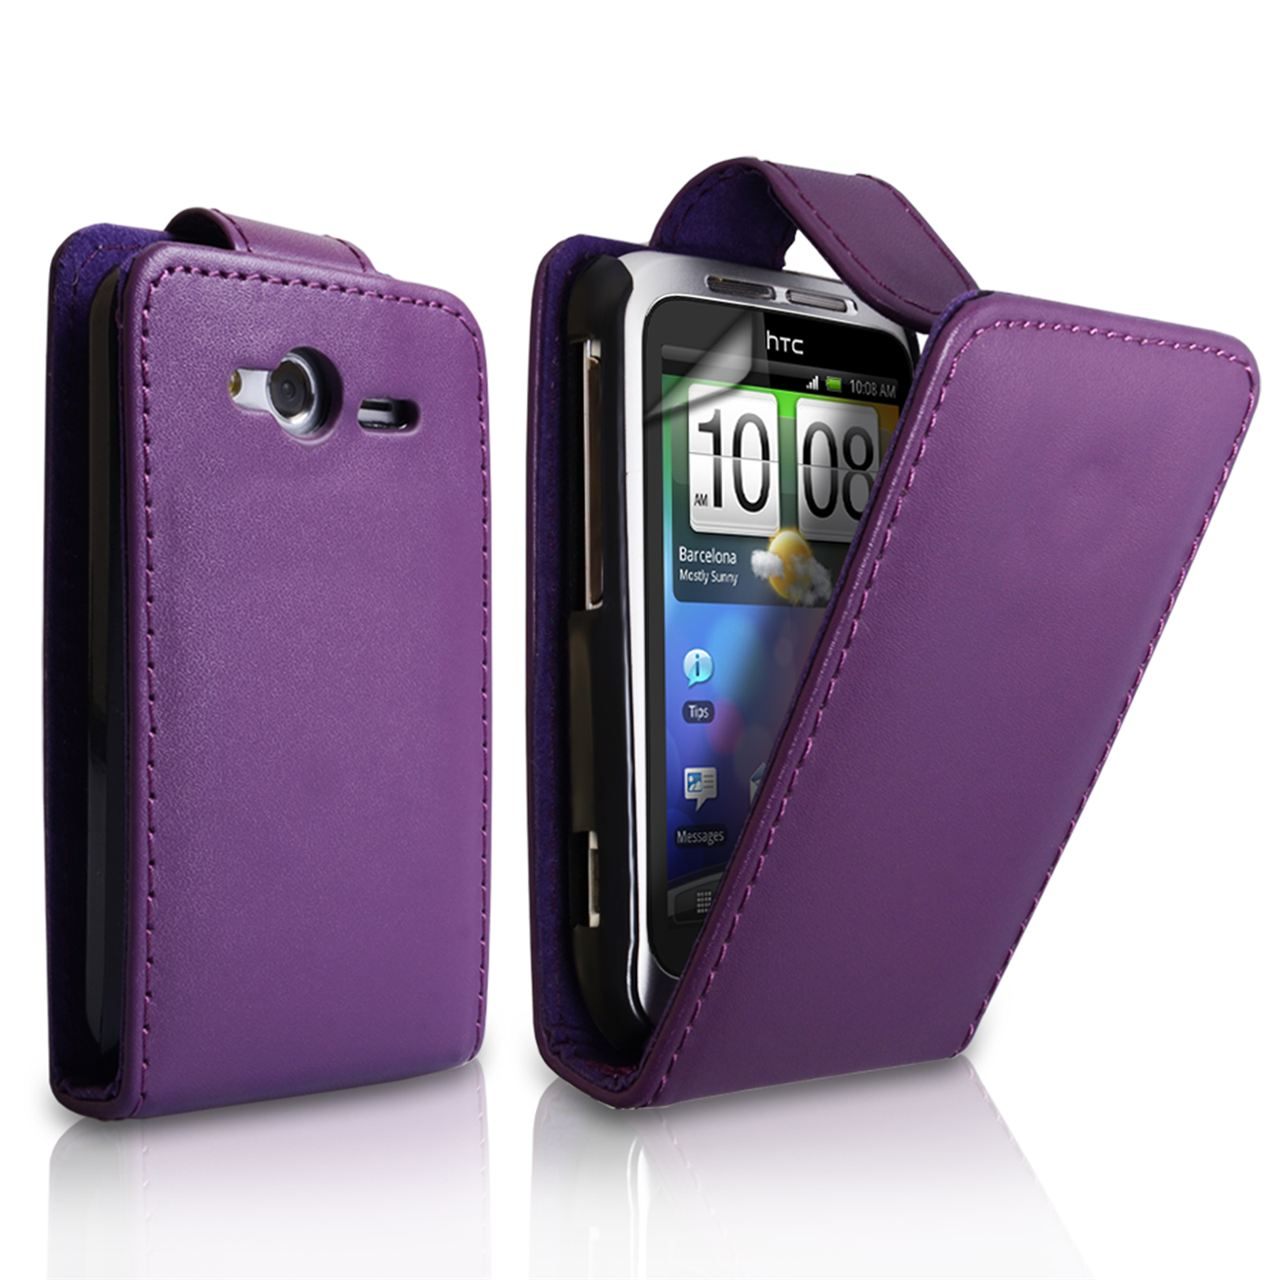 YouSave Accessories HTC Wildfire S Leather-Effect Flip Case - Purple